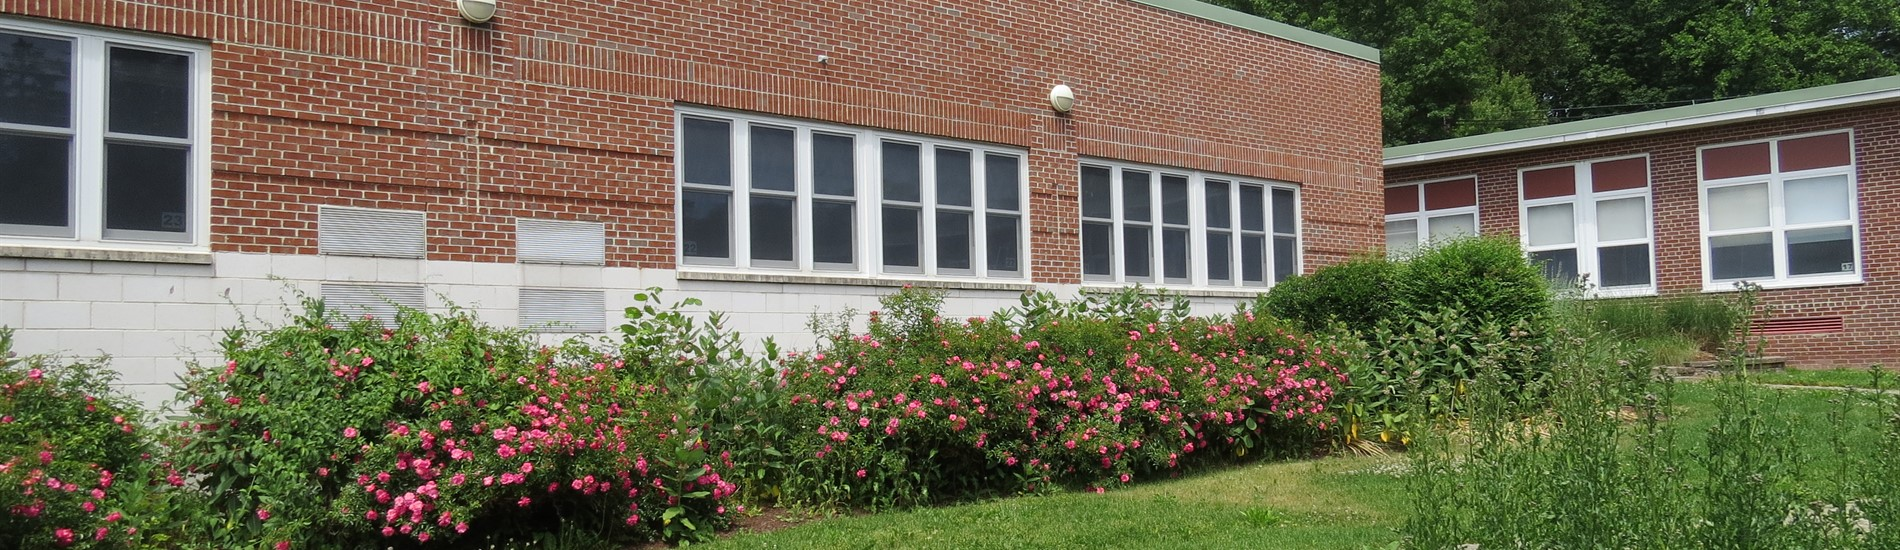 WCMS COURTYARD ROSES